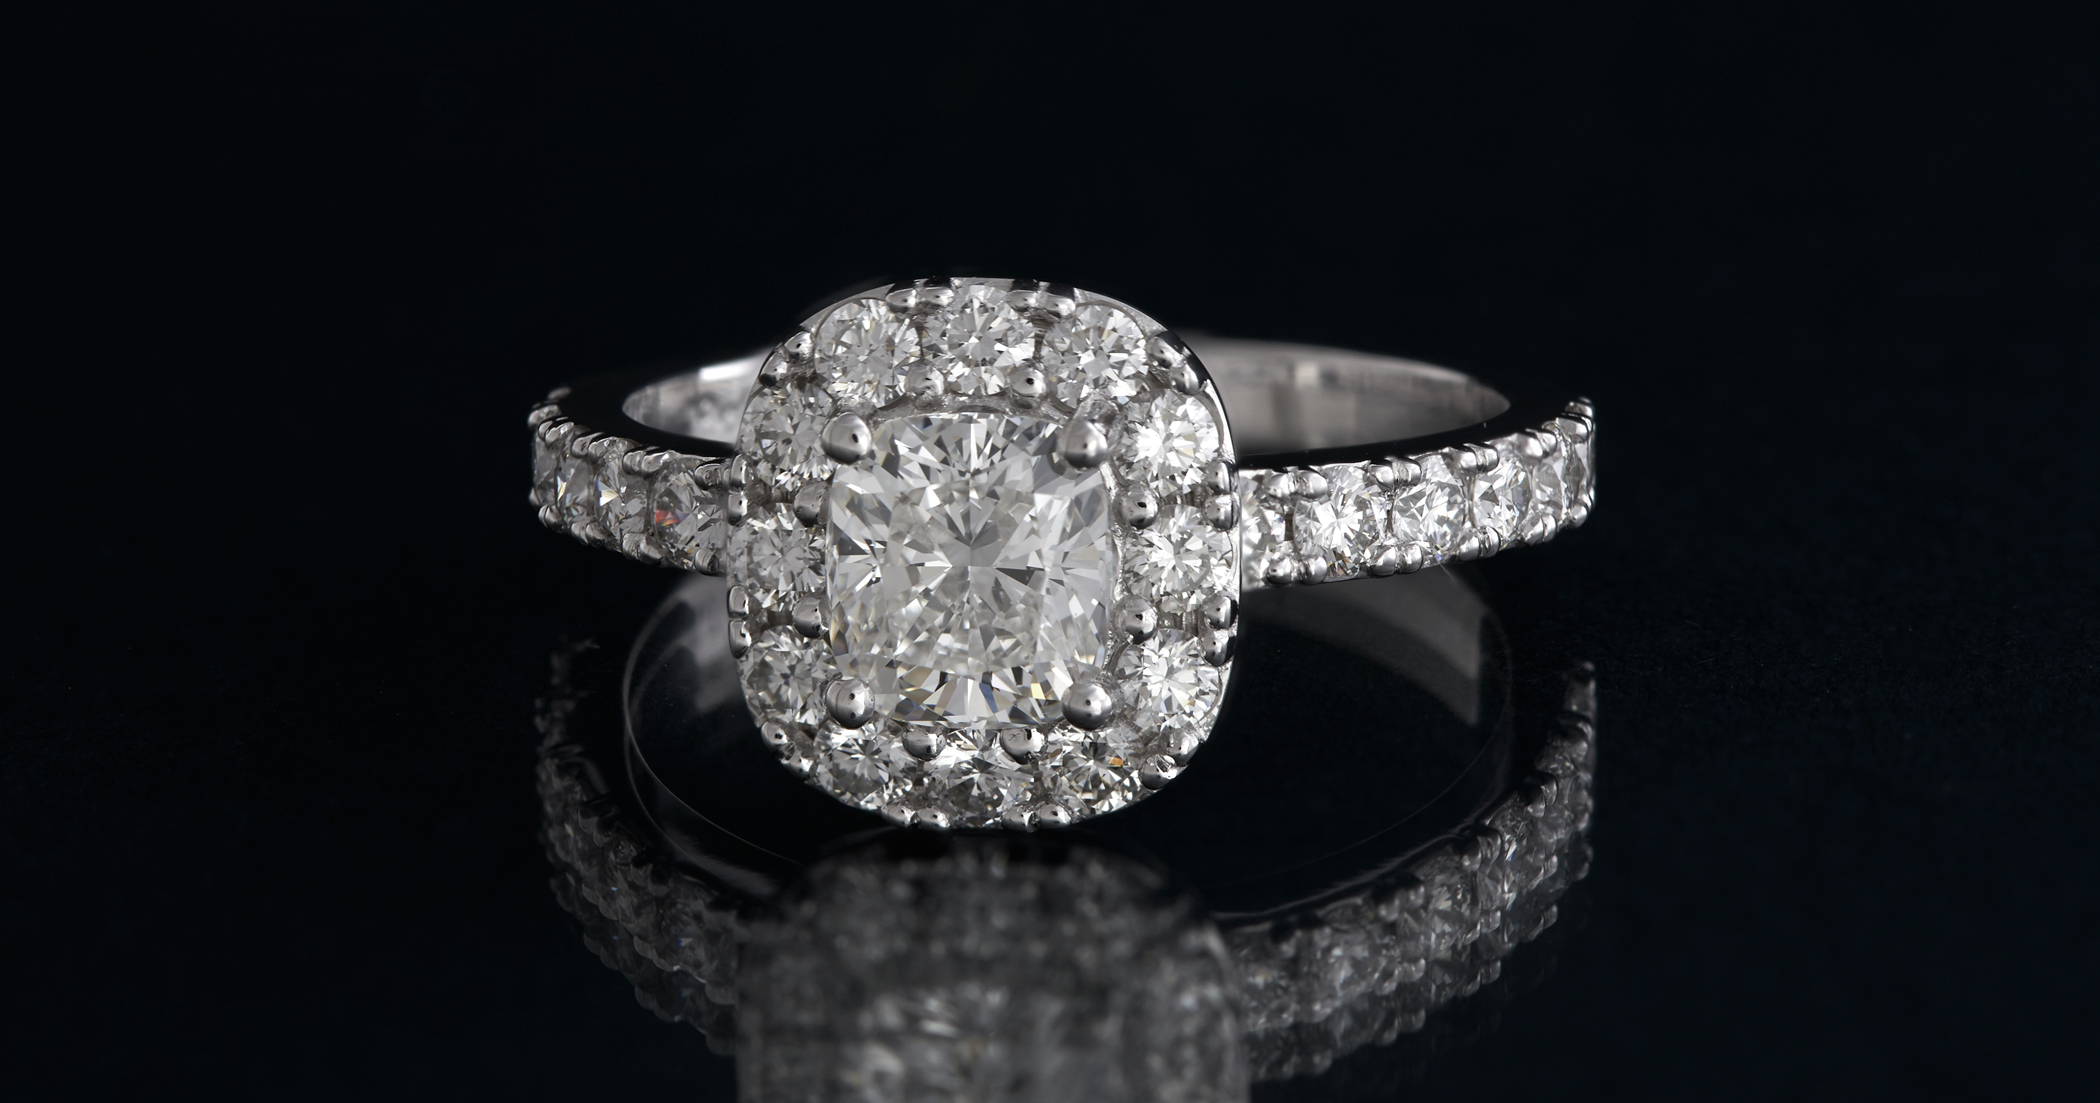 Proposal ring version #2. Larger diamonds in the halo.